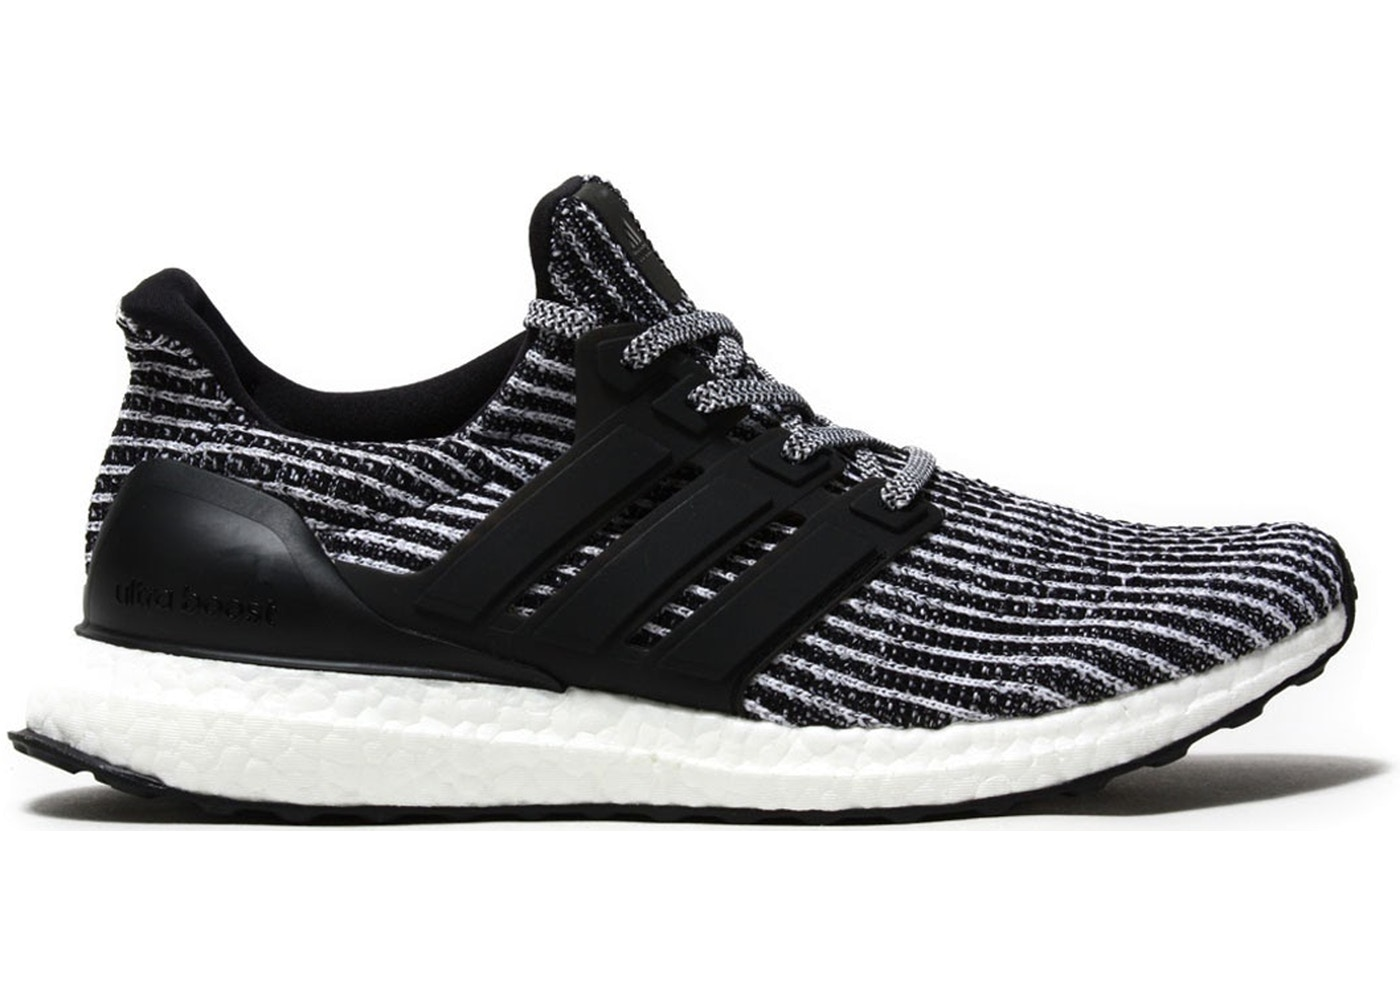 adidas Ultra Boost 4.0 Show Your Stripes CM8113 Release Date